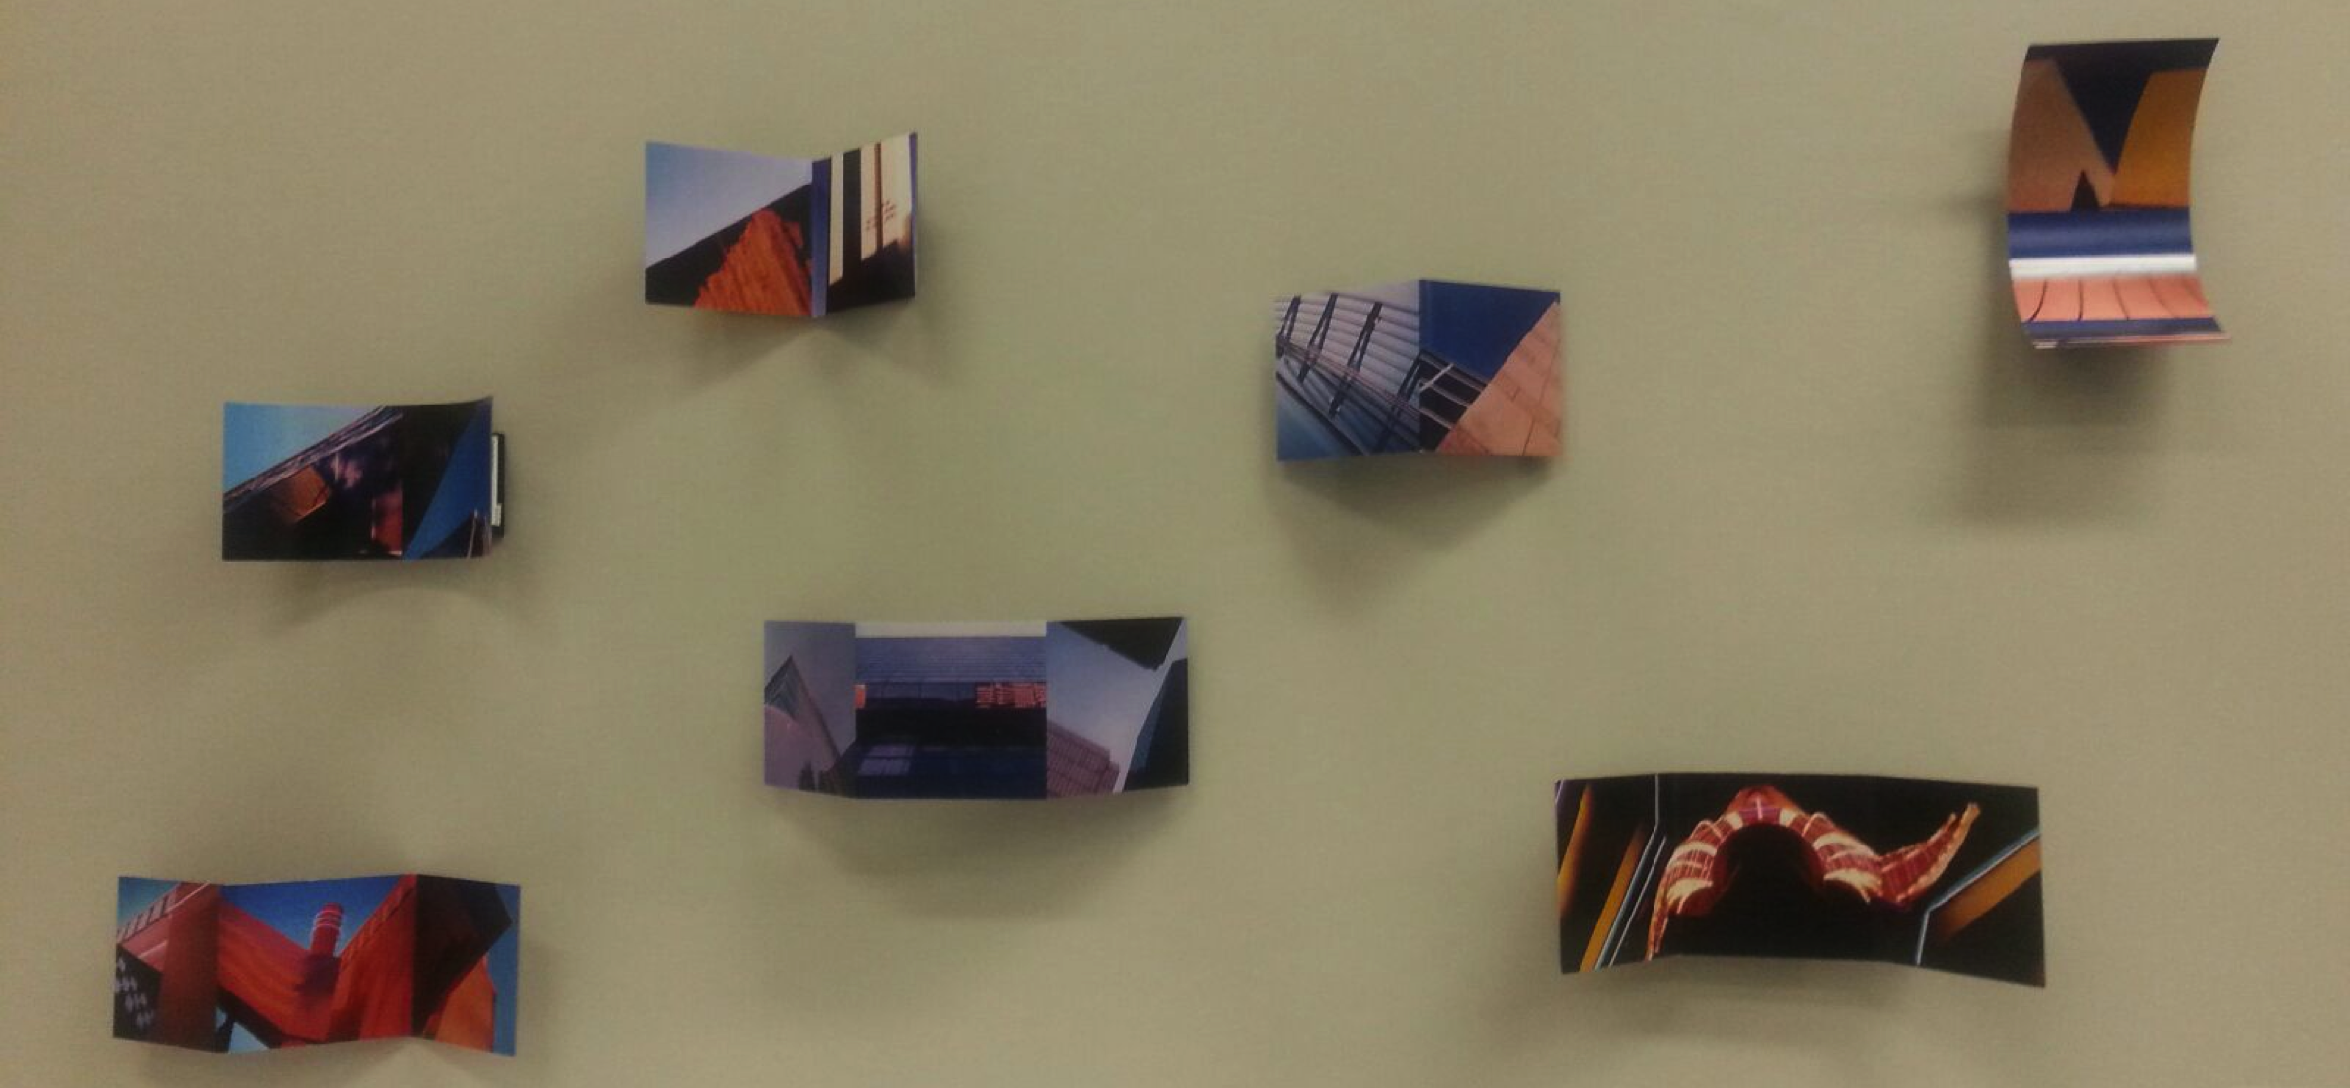 Thomas McGovern's New City Project Studies artwork.  navigate down for further details